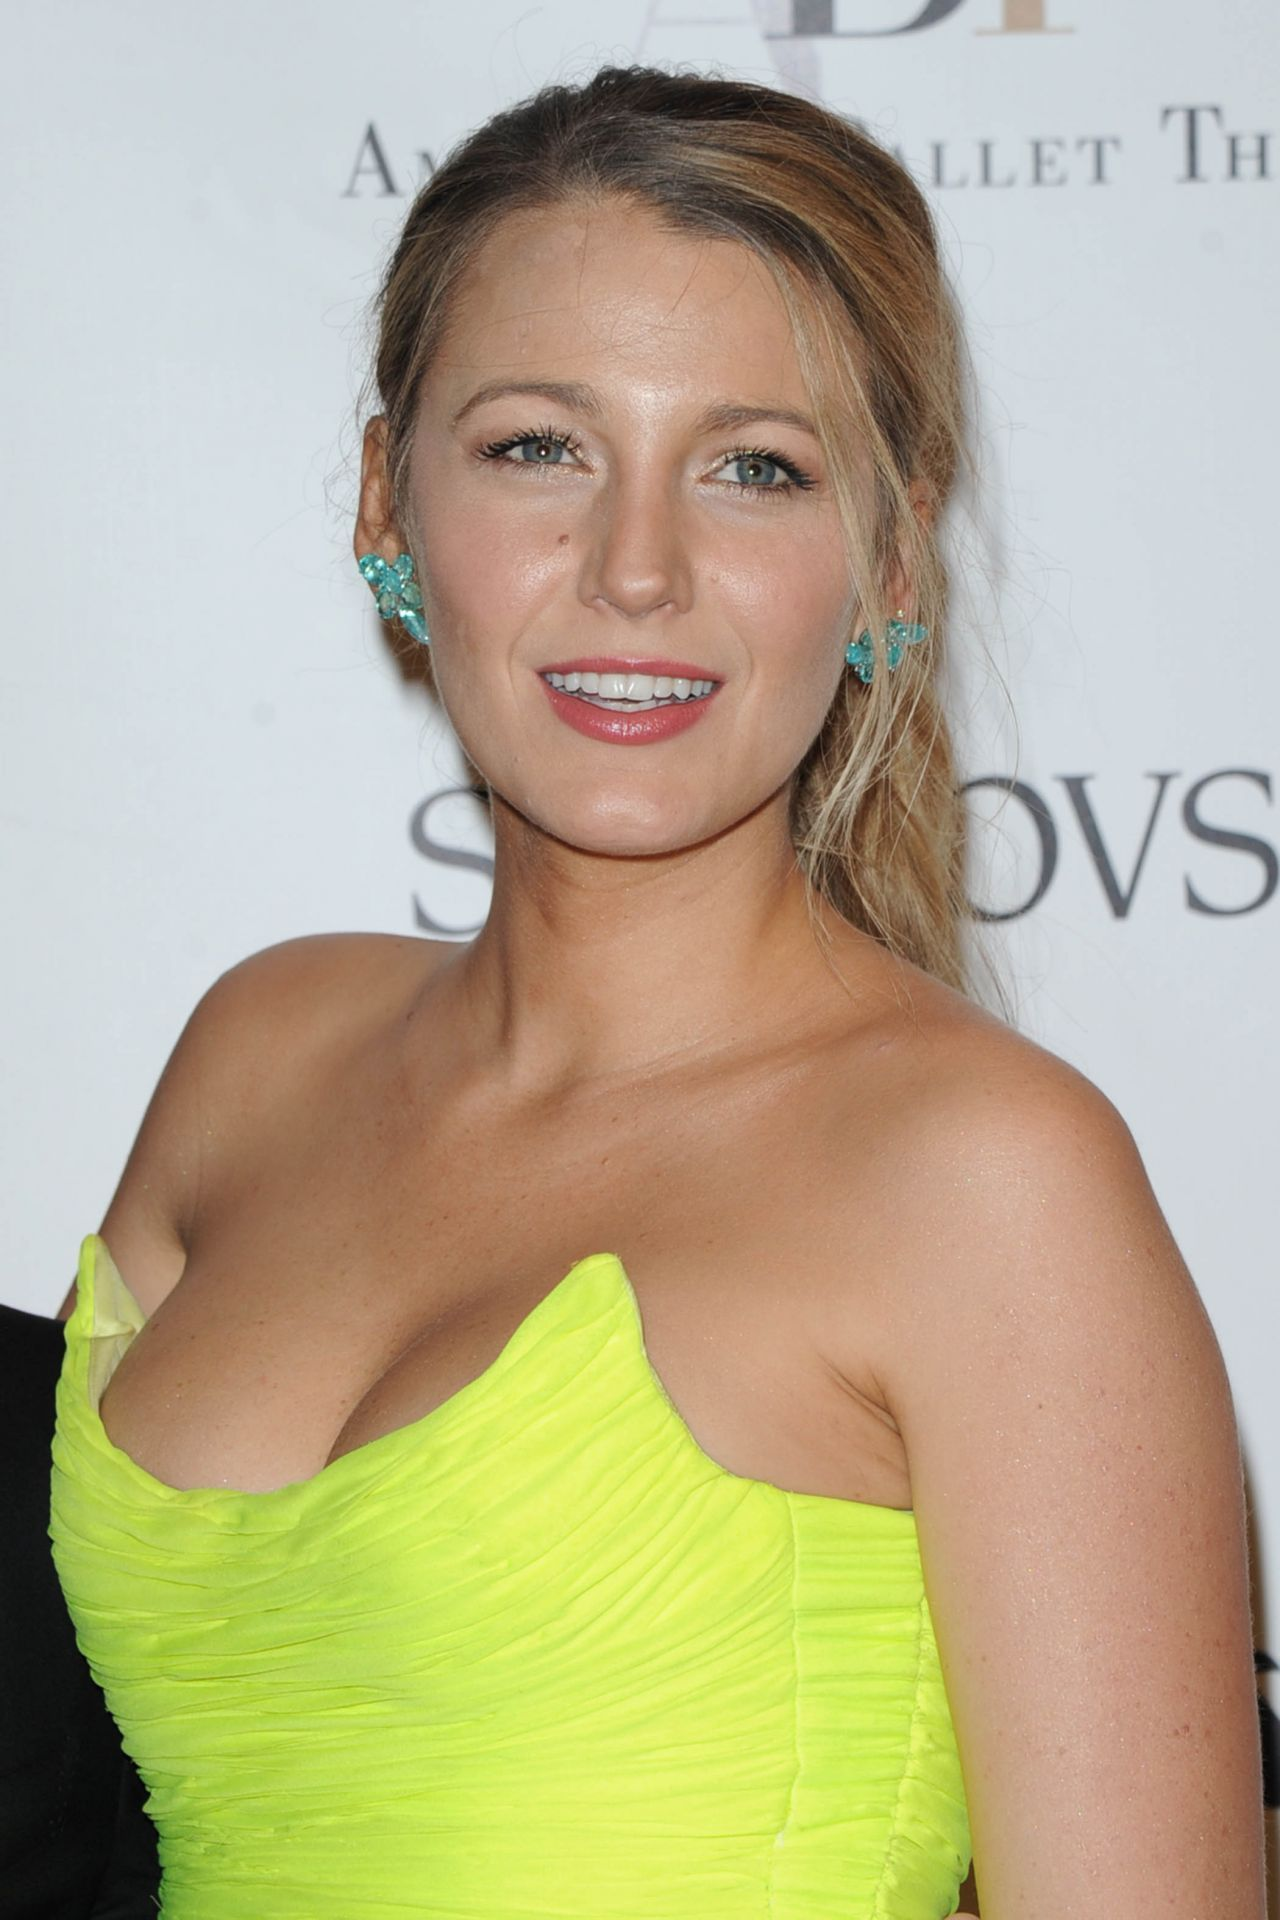 Blake Lively imdb,movies and tv shows | A BOLLY WOOD NEWS